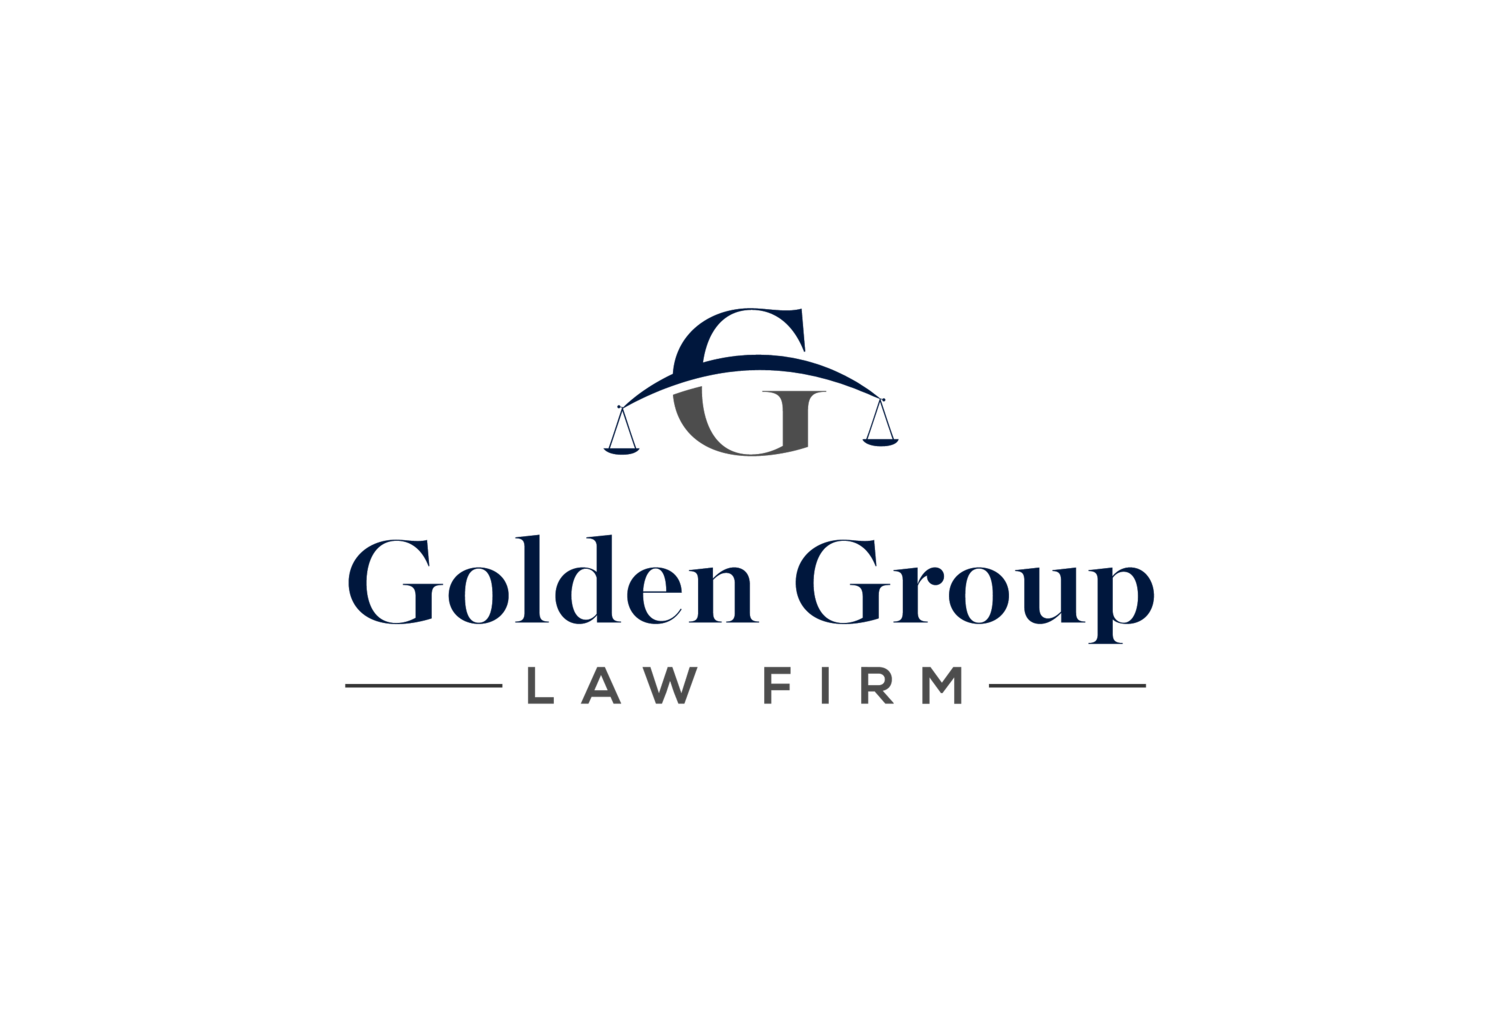 GOLDEN GROUP LAW FIRM